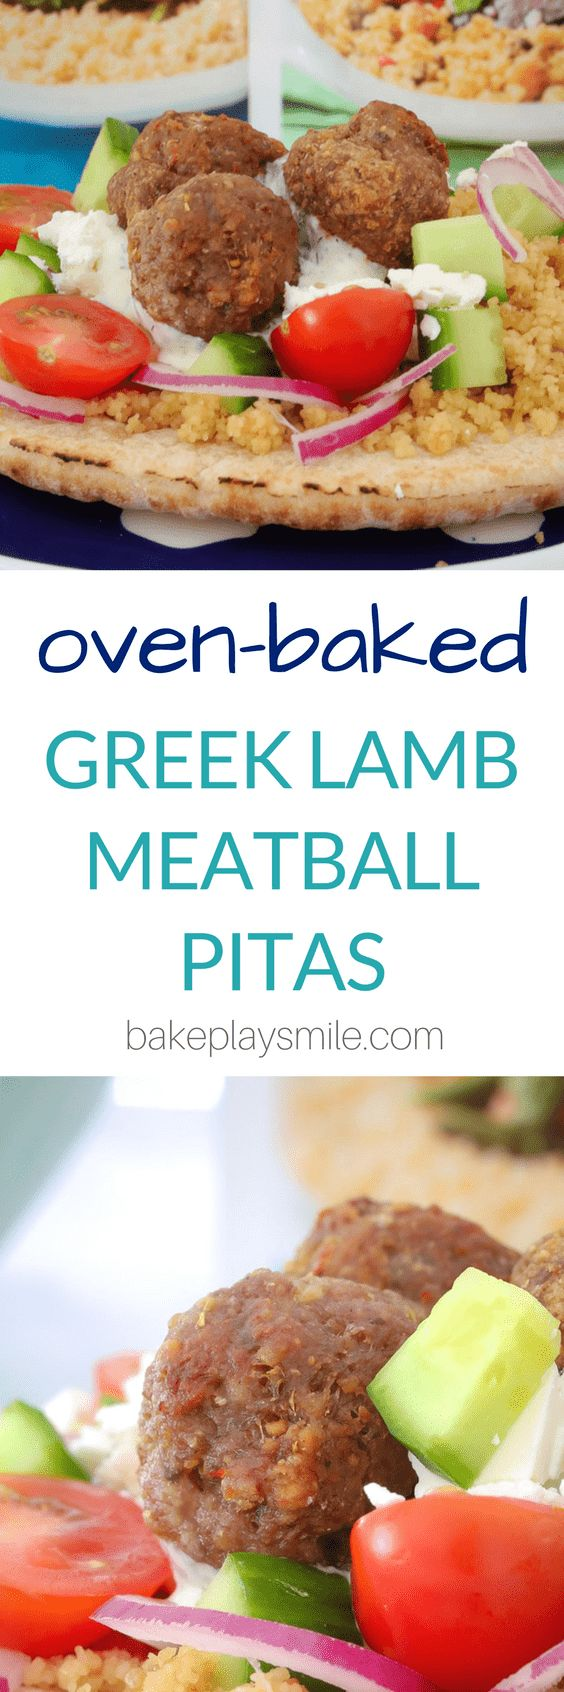 100 best greek food recipes images by crock pot ladies delicious greek lamb meatball pitas toddler food recipesgreek forumfinder Image collections